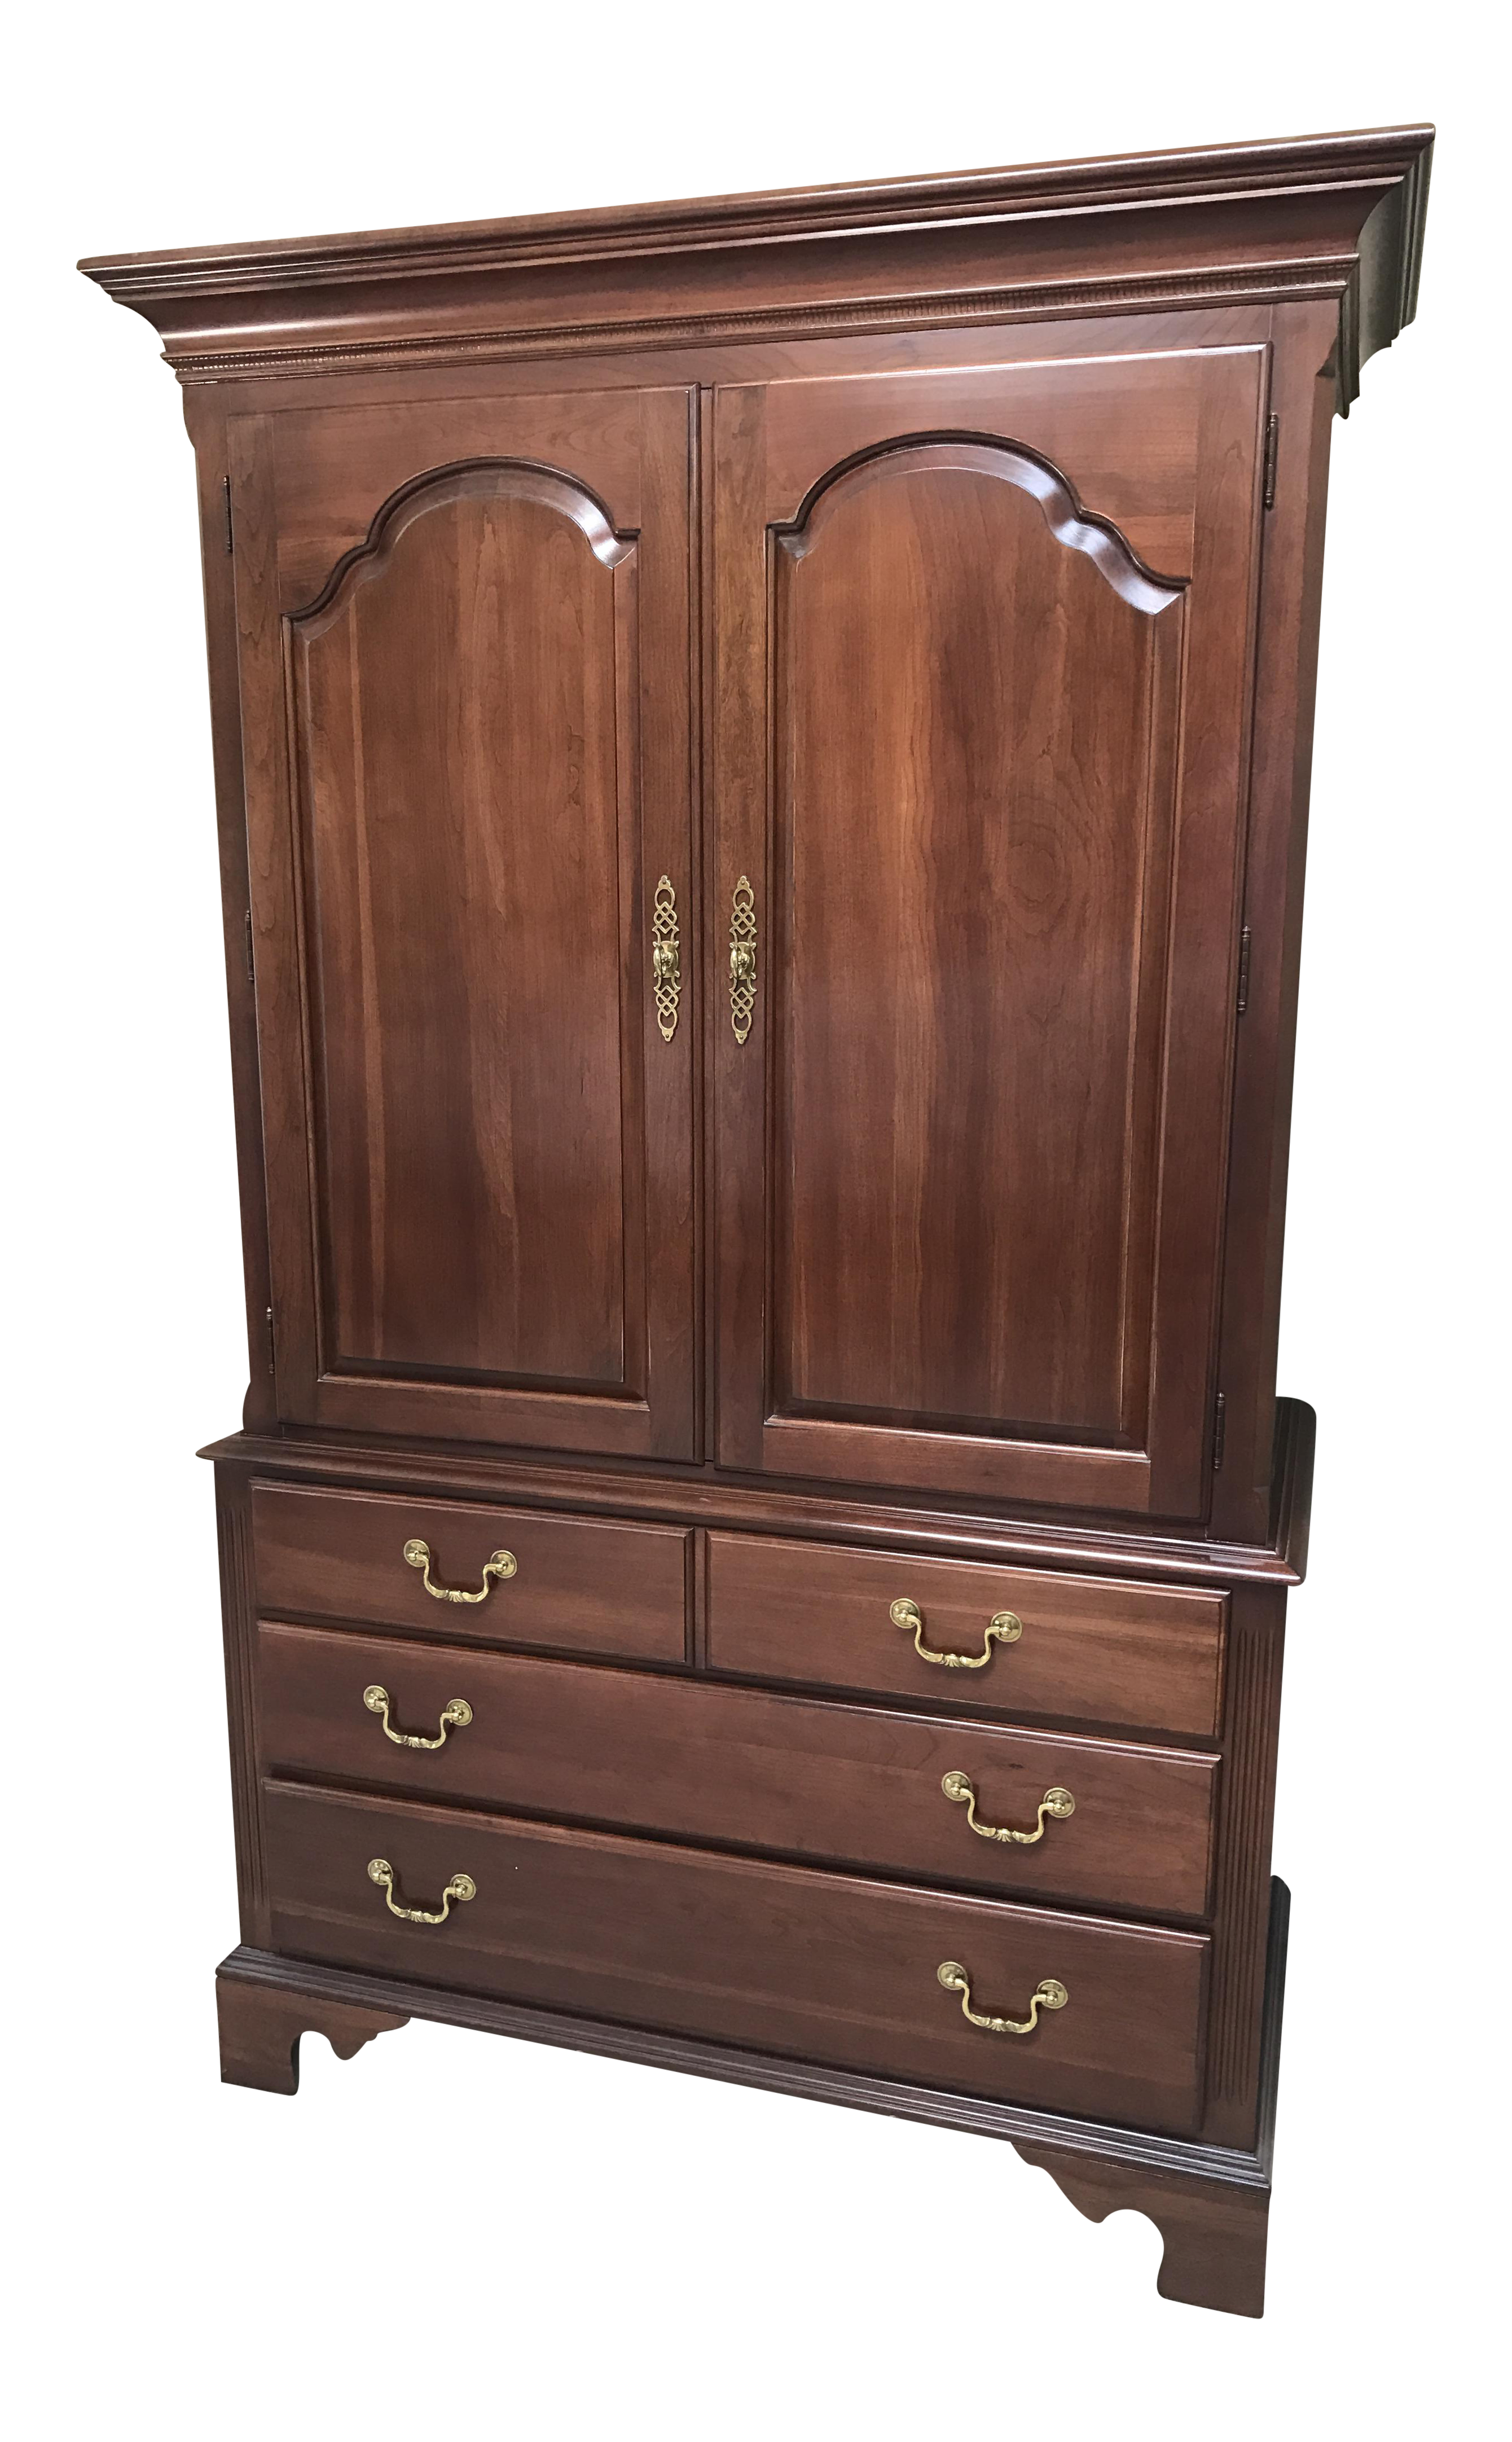 Charmant Ethan Allen Georgian Court Queen Anne Armoire